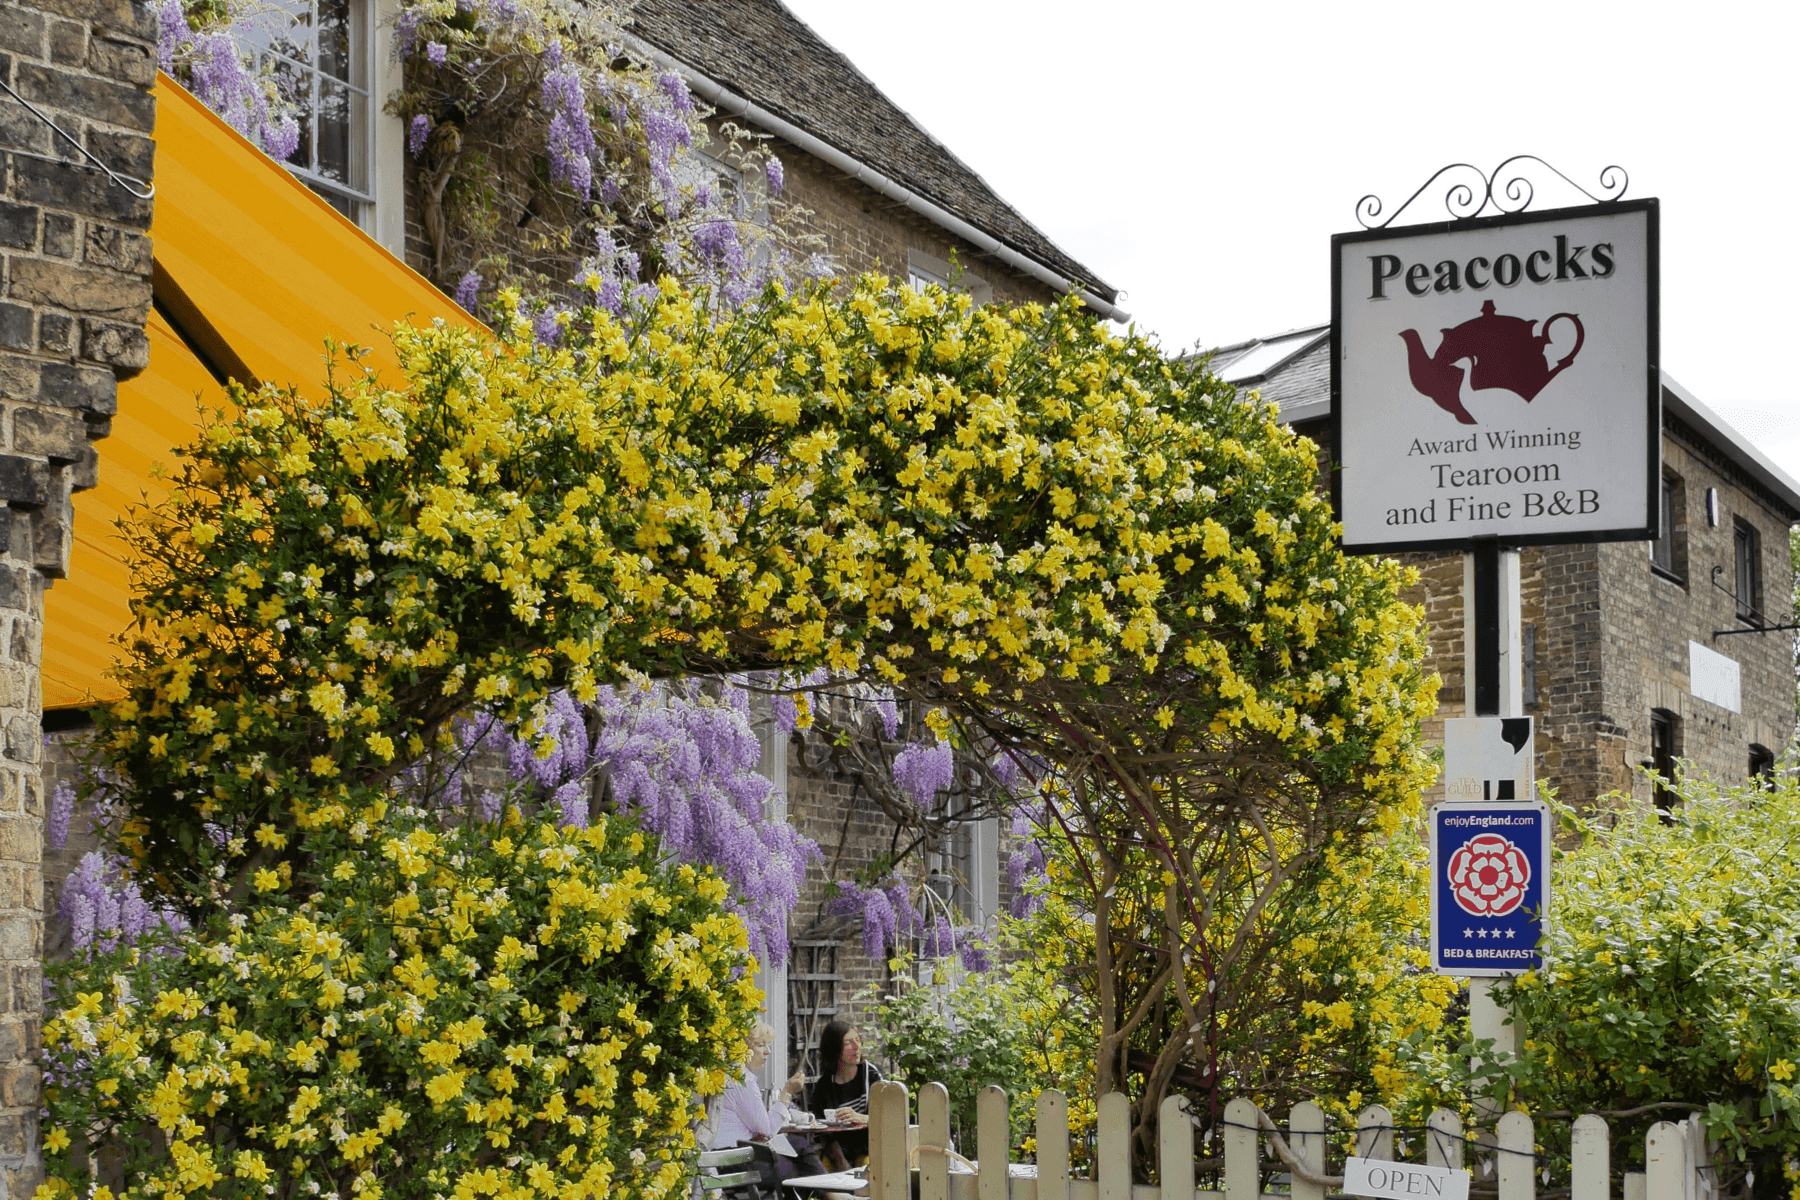 Peacocks Tearoom and B&B